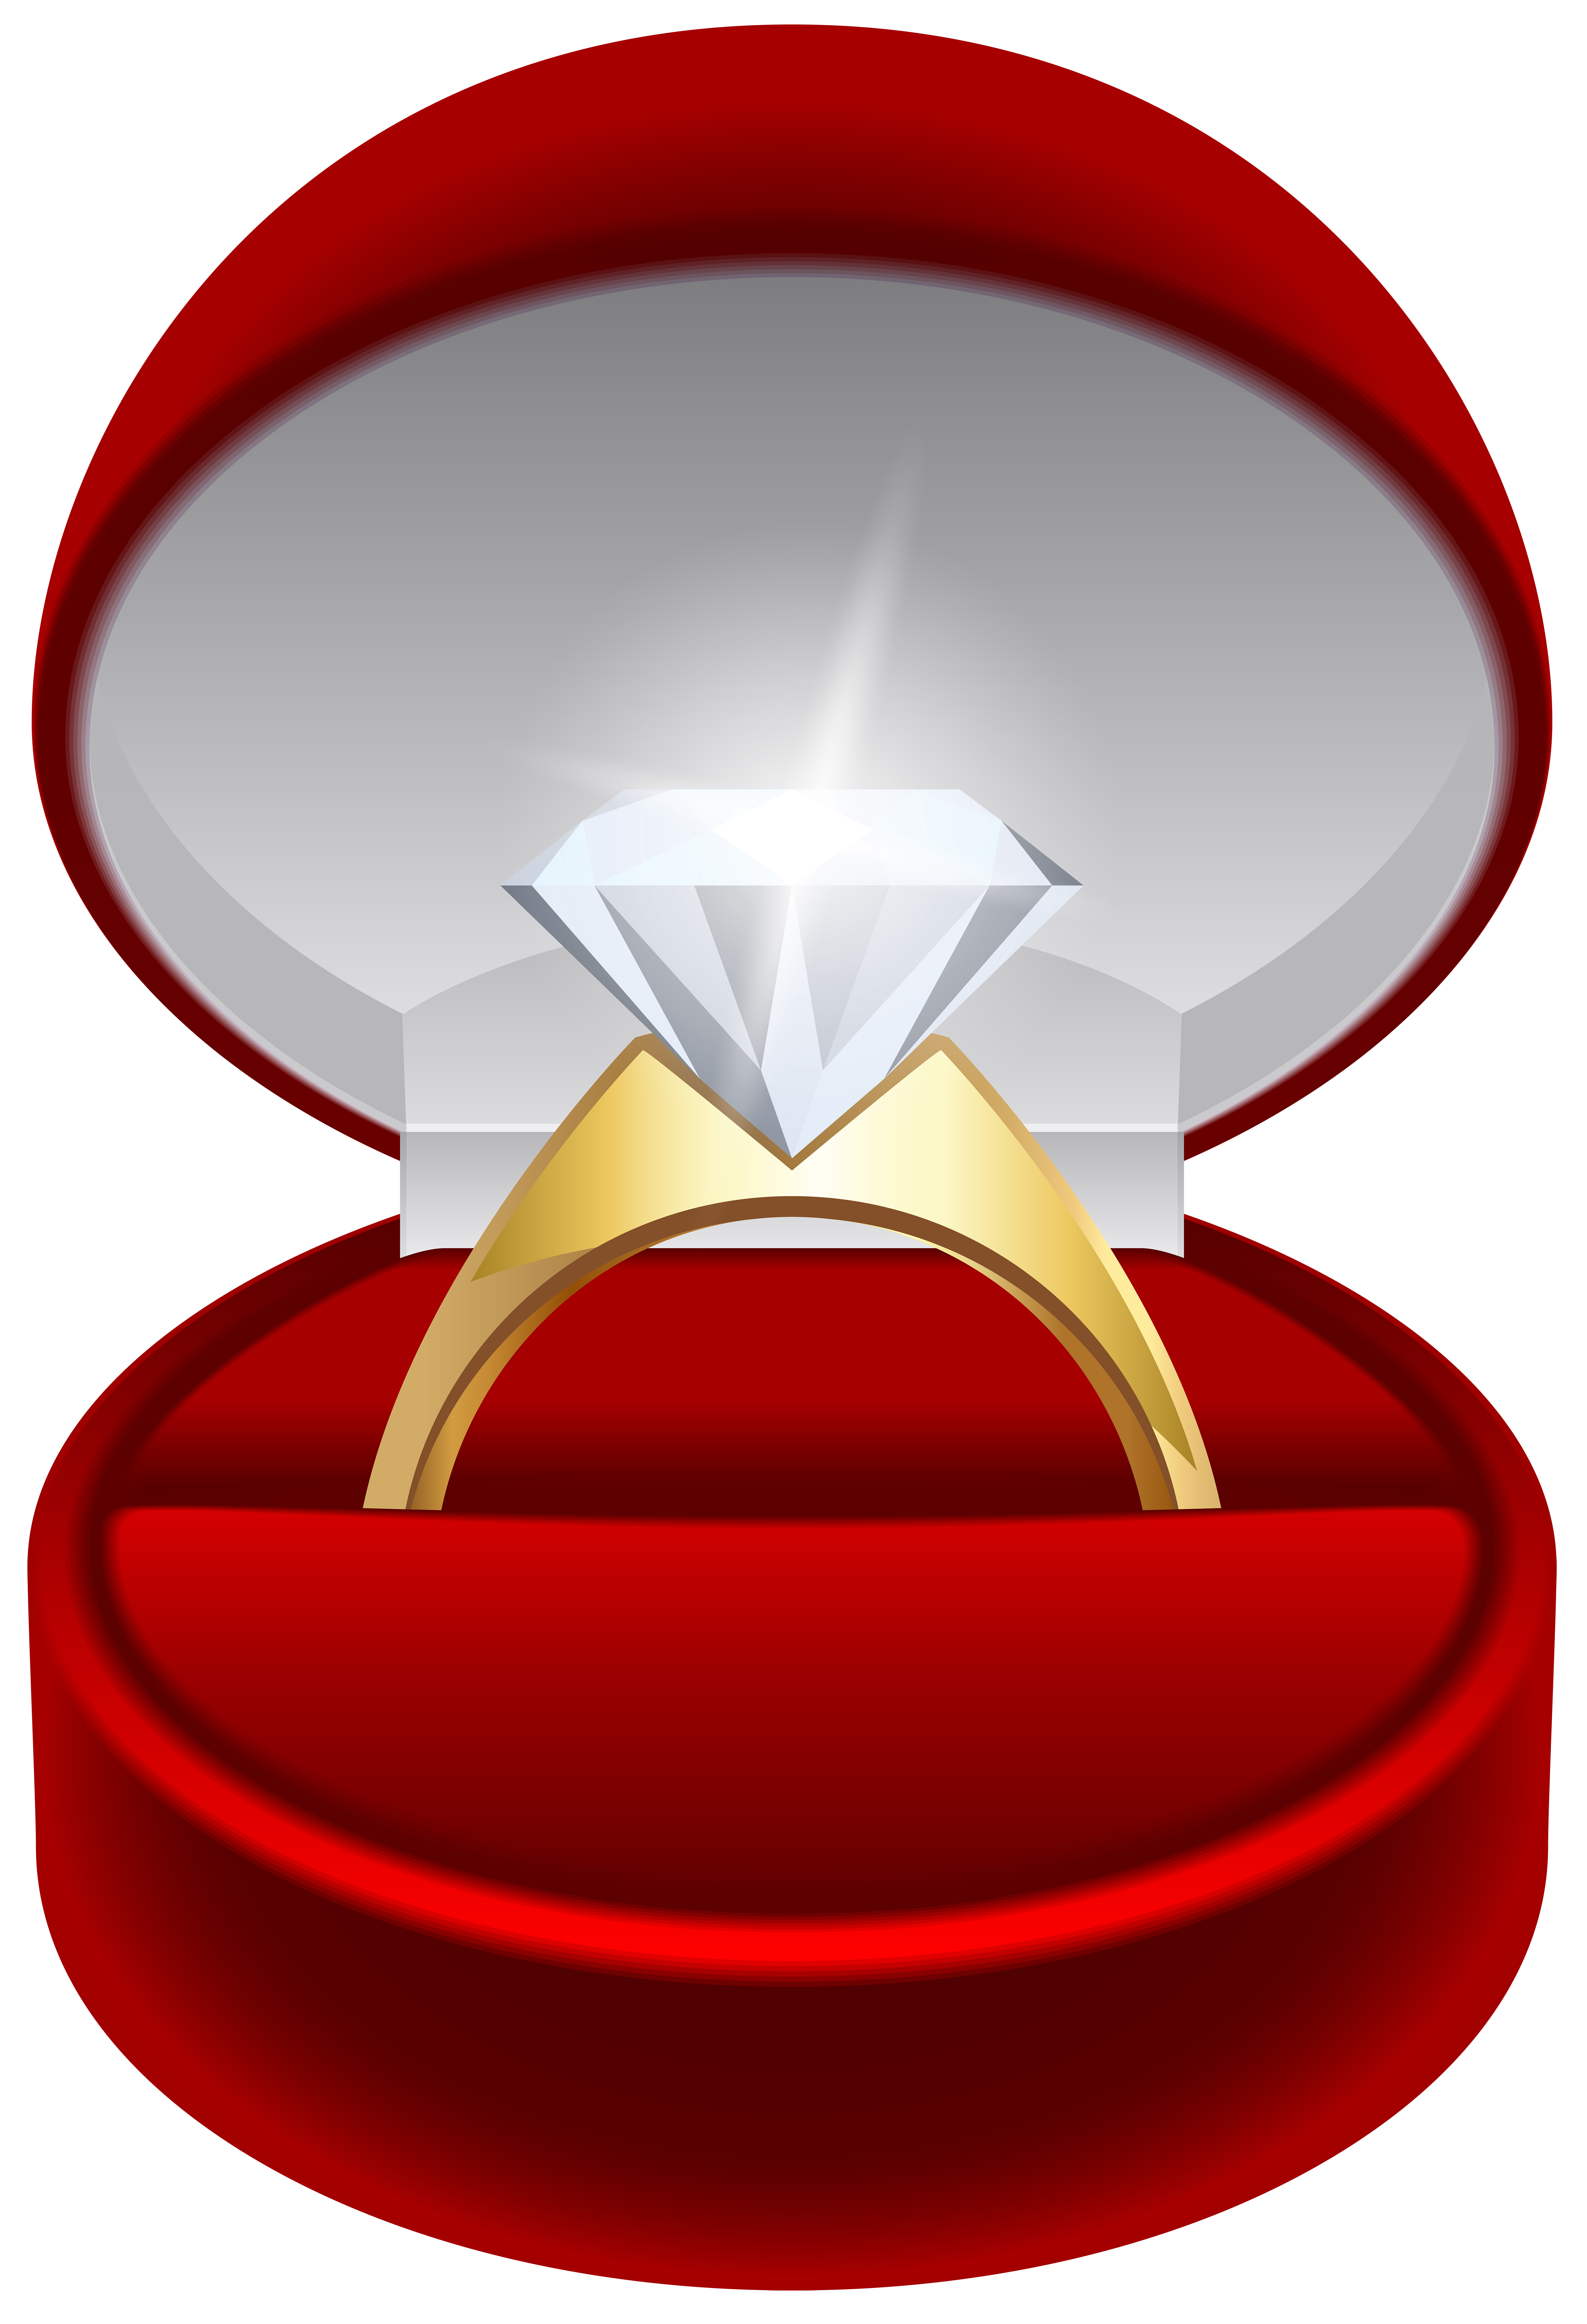 Couple cliparthot of and. Engagement clipart bachelorette ring